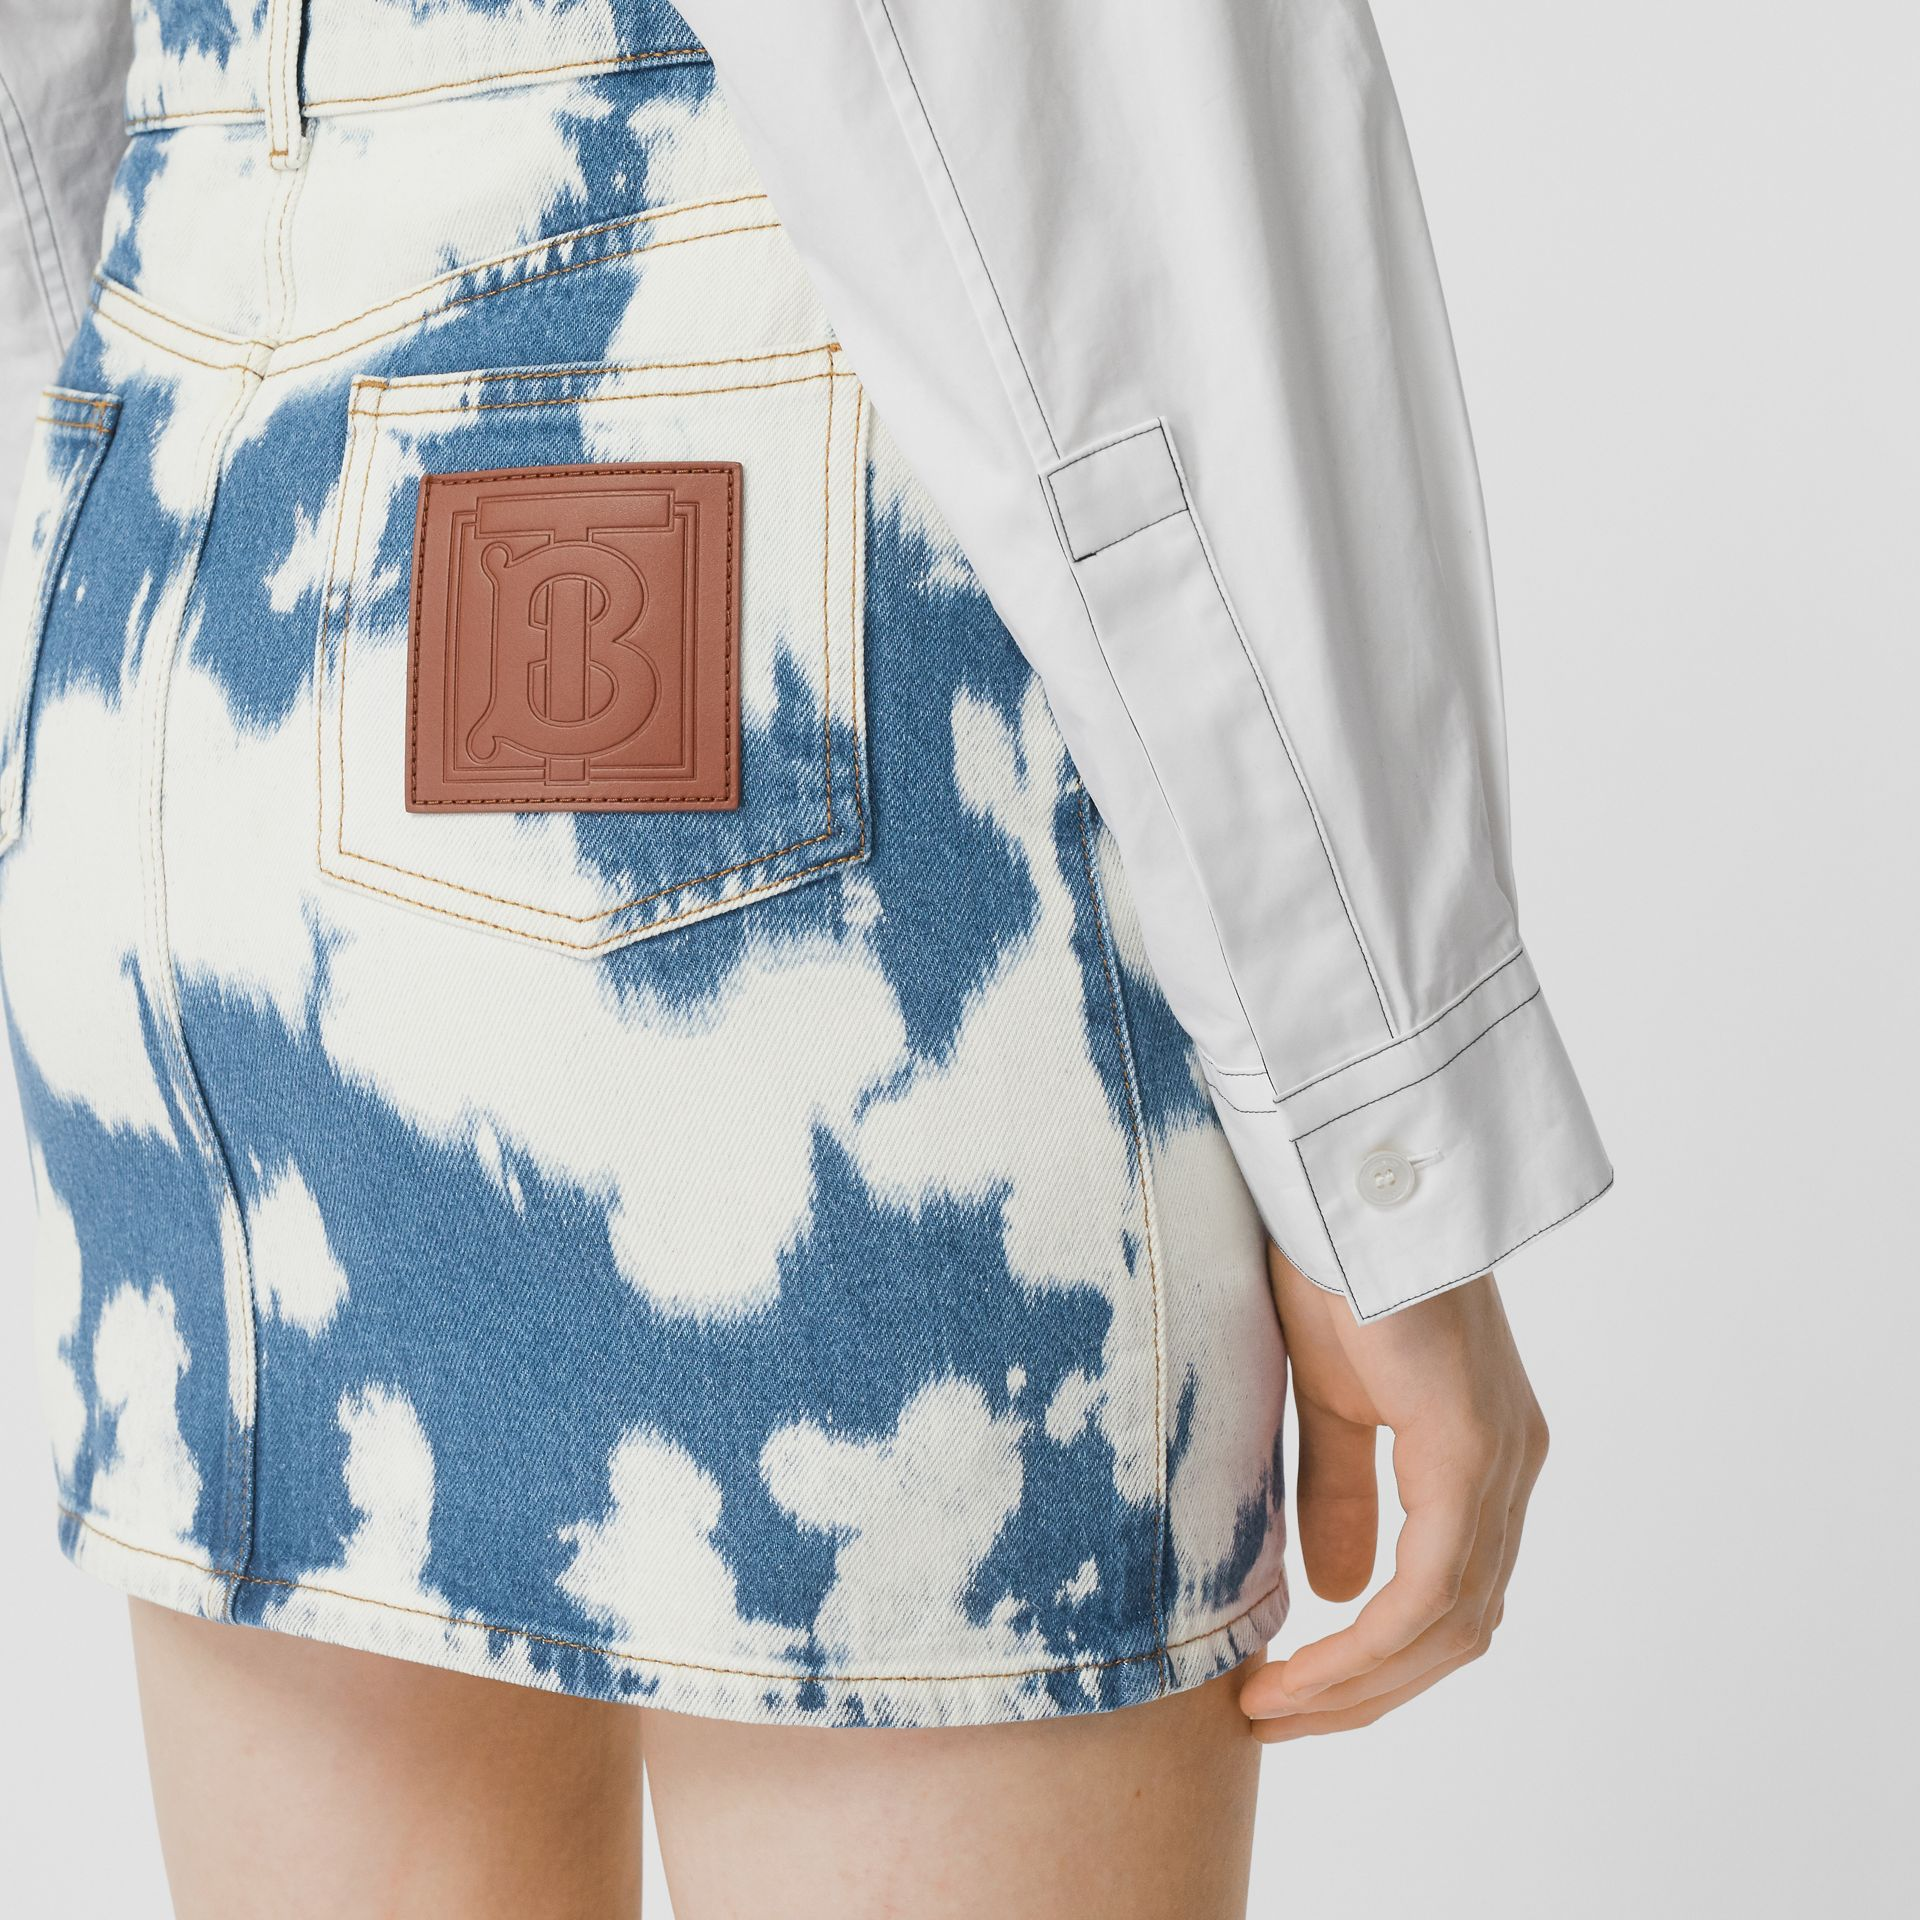 Monogram Motif Bleached Denim Mini Skirt in Blue - Women | Burberry - gallery image 1